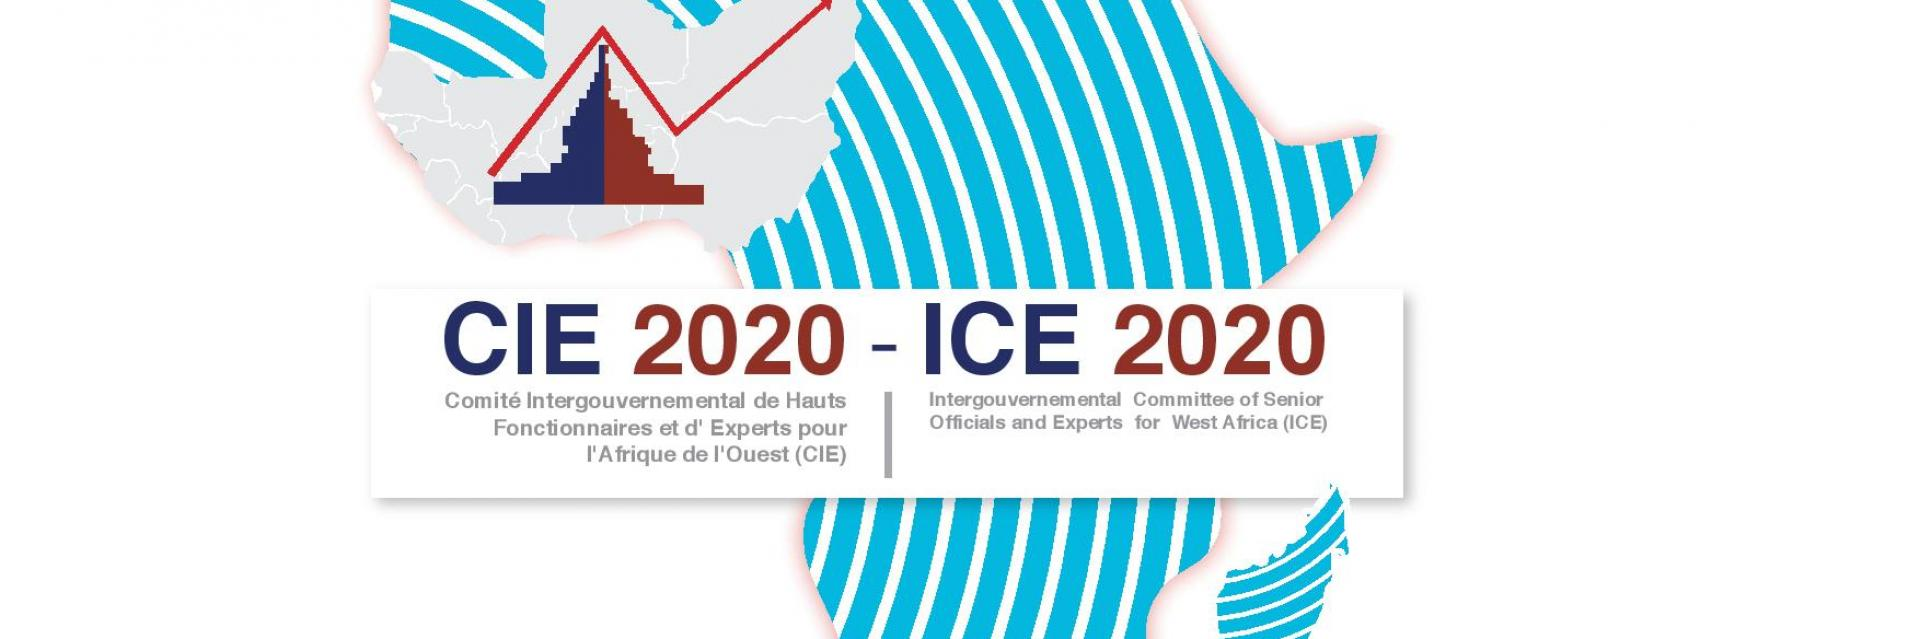 Twenty-Third (23rd) Conference of The Intergovernmental Committee of Senior Officials and Experts (23rd Ice) For West Africa